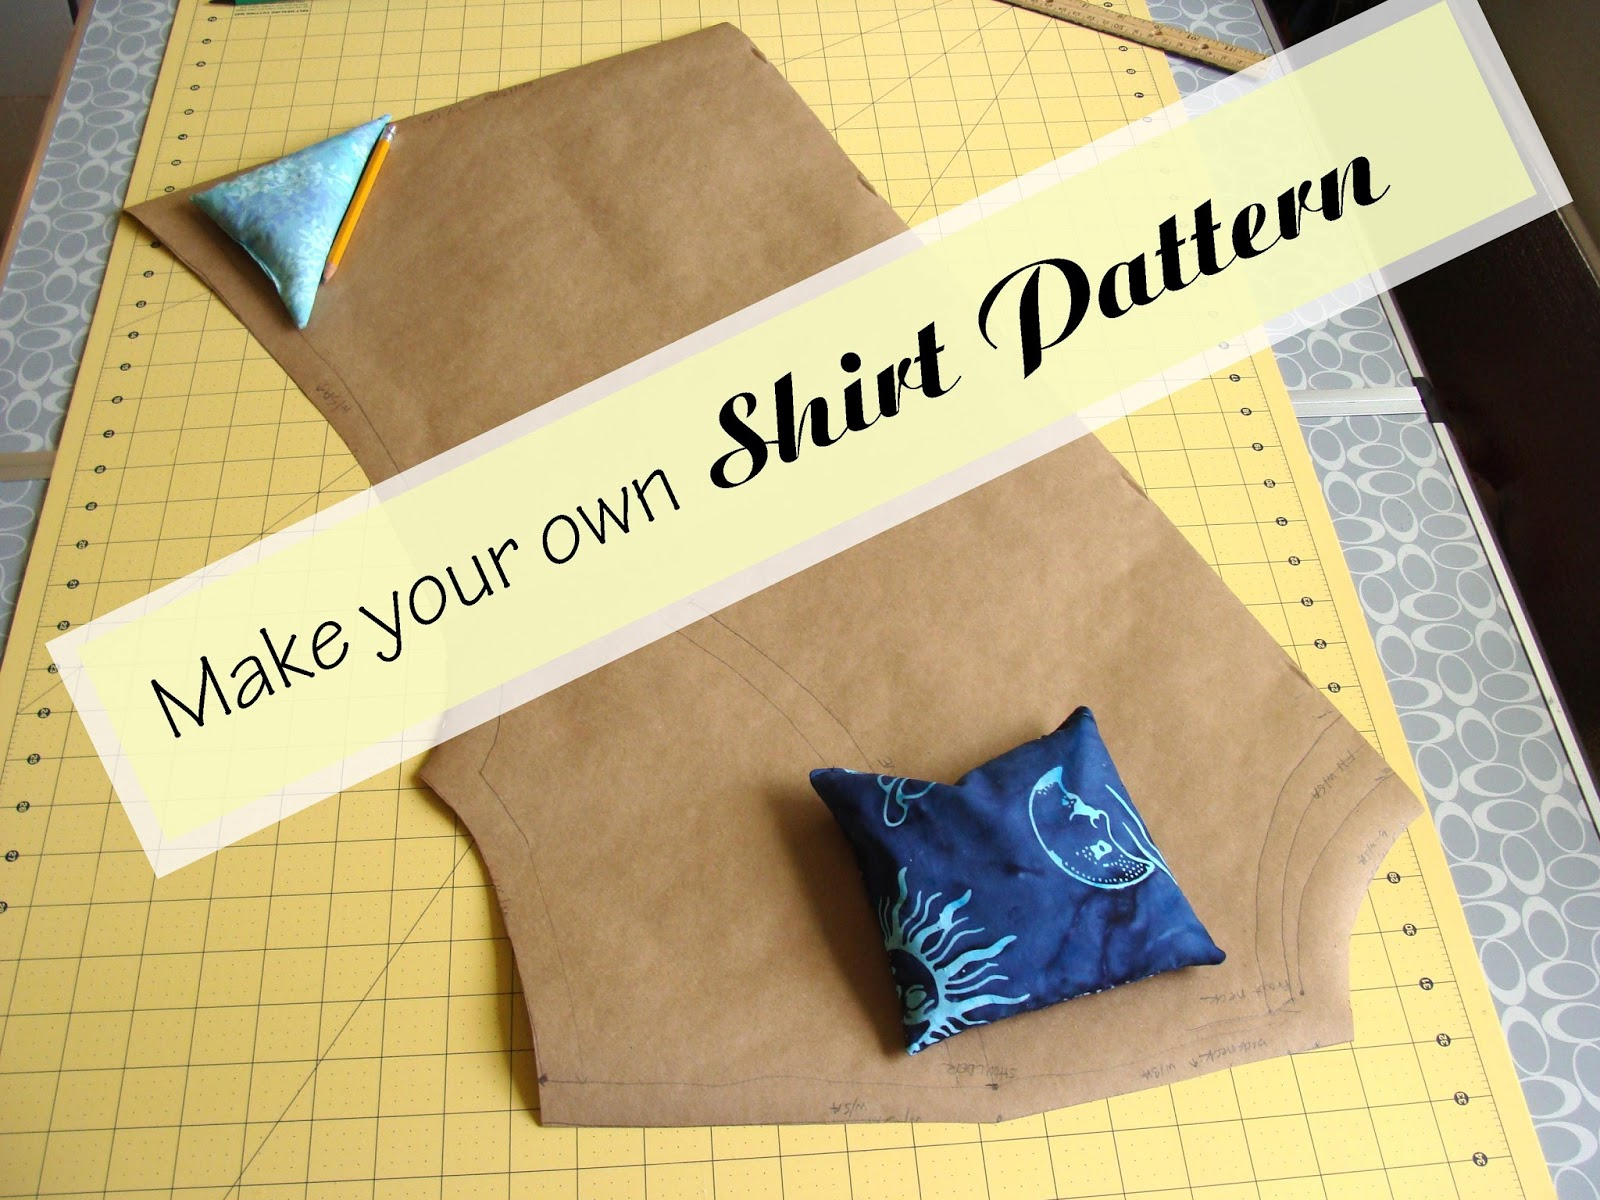 Sewing tutorials crafts diy handmade shannon sews blog for make your own easy shirt pattern jeuxipadfo Gallery